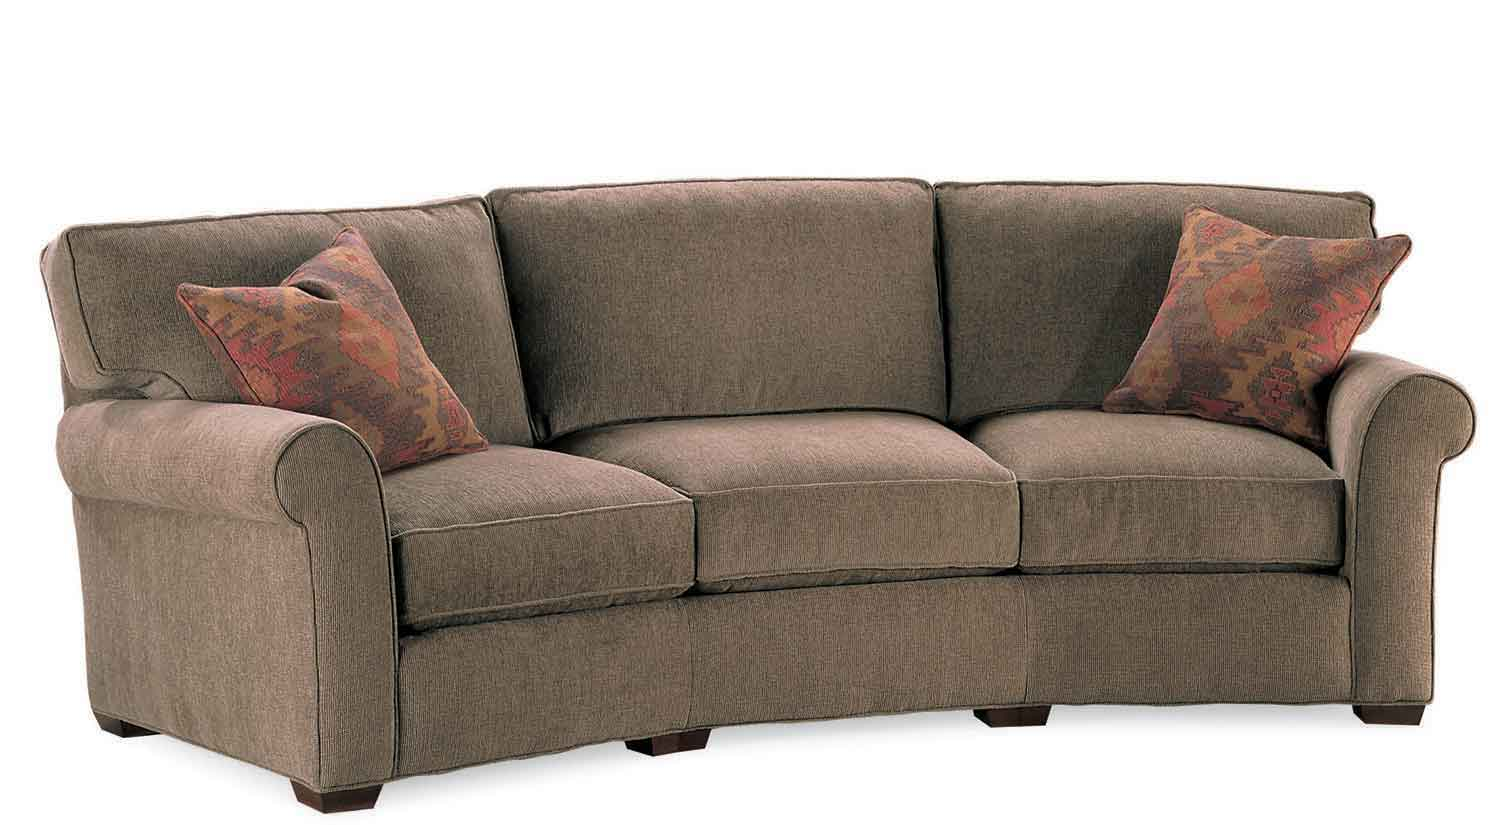 Circle Furniture Taylor Wedge Sofa Wedge Couches Ma